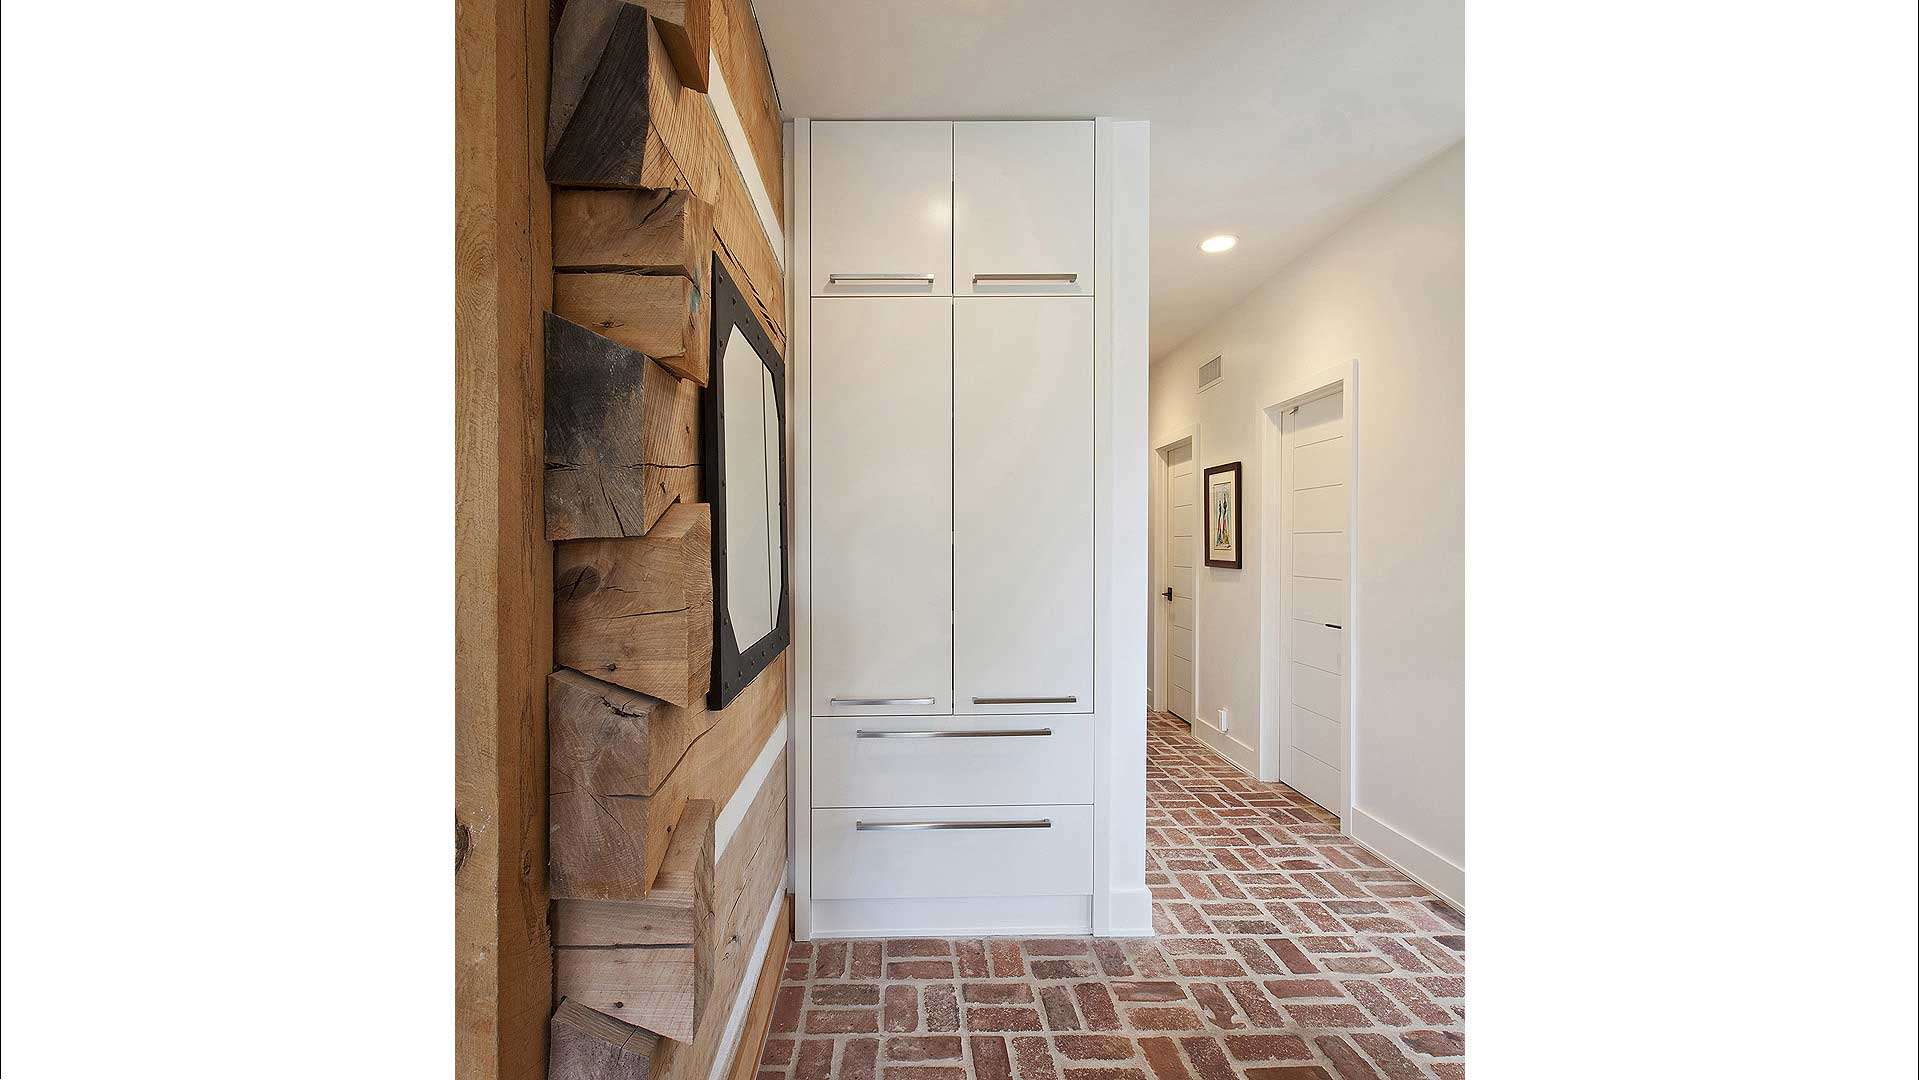 Scandinavian Rustic Cabin - Pantry Cabinet - Christopher Short, Architect, Indianapolis, HAUS Architecture